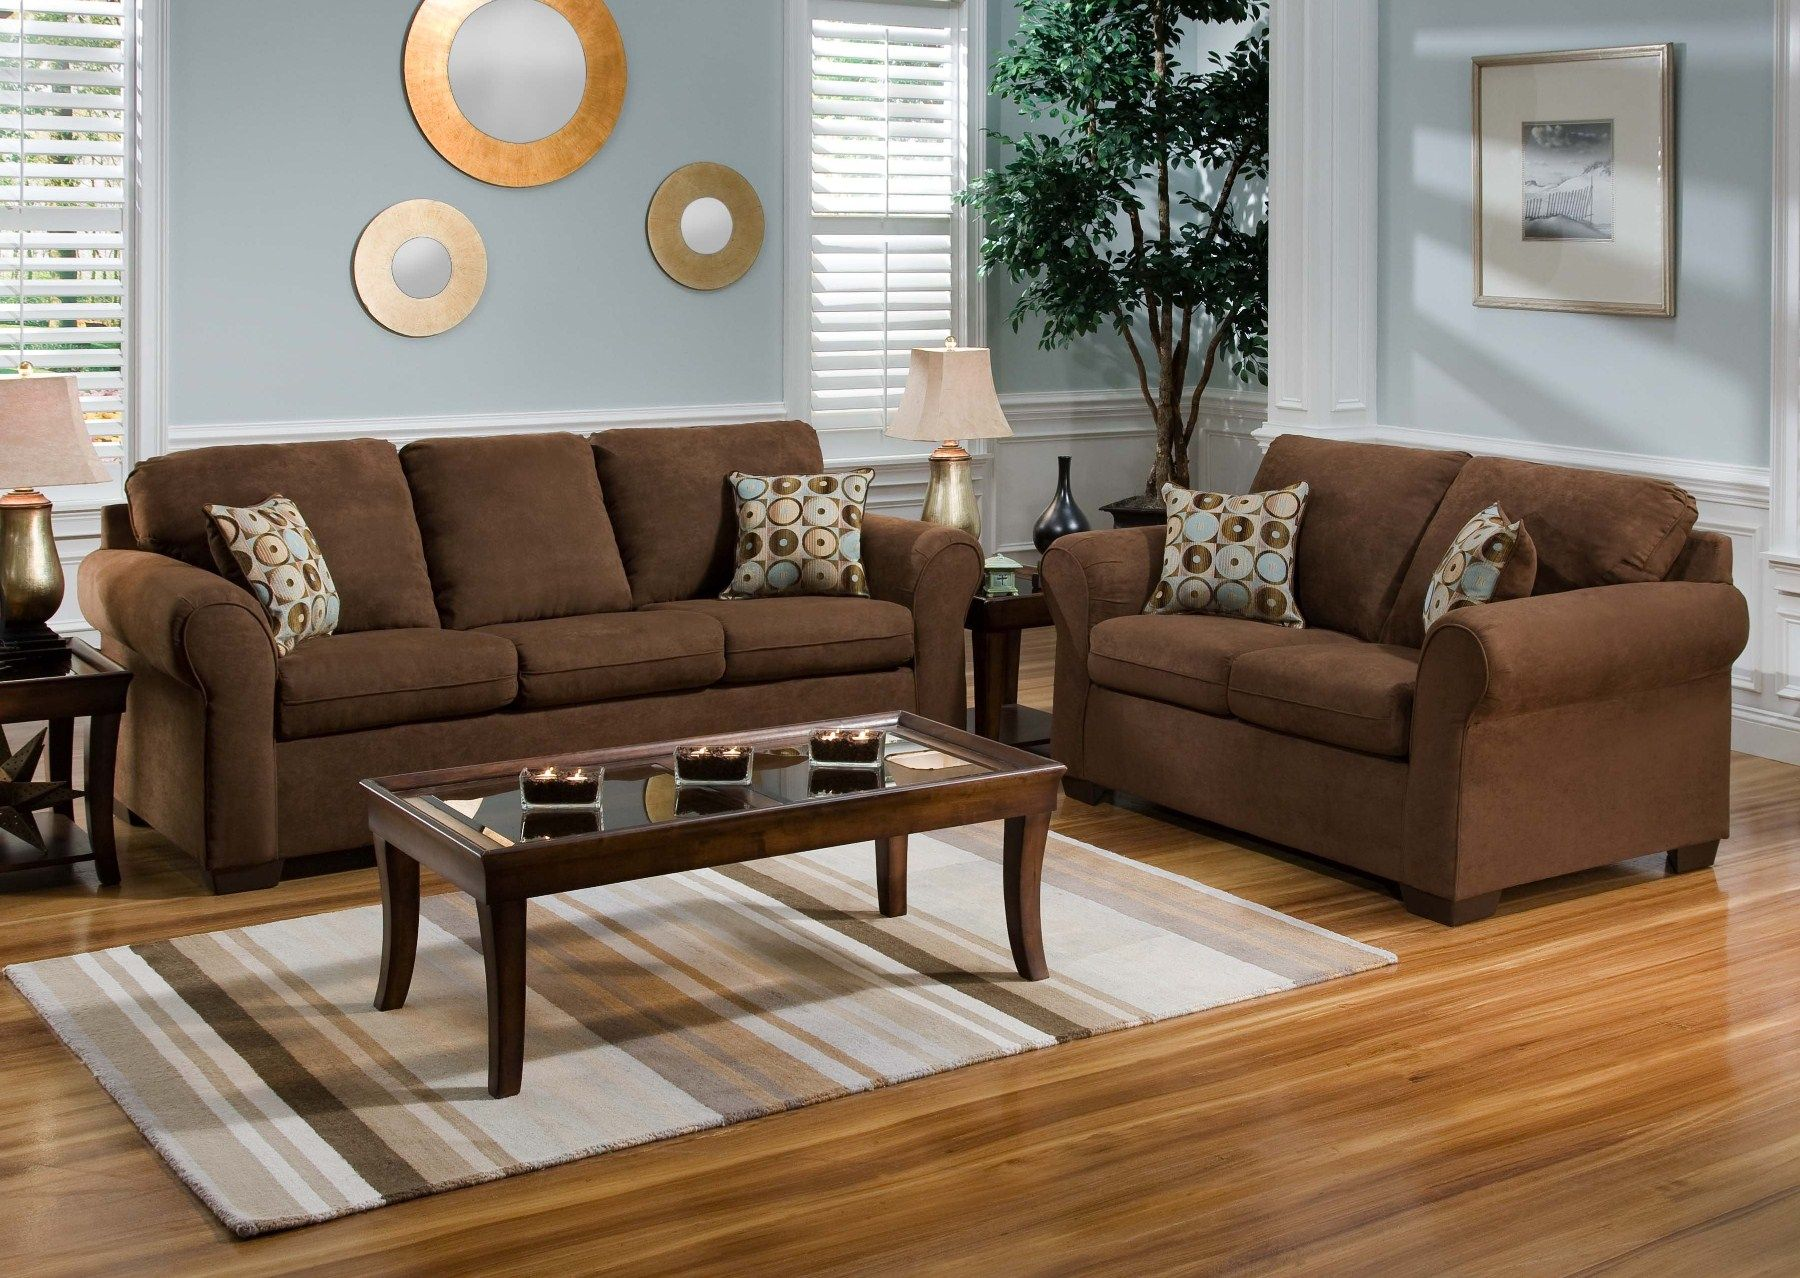 Living Room Colour Schemes Brown Sofa Warm Color With Chocolate Couch